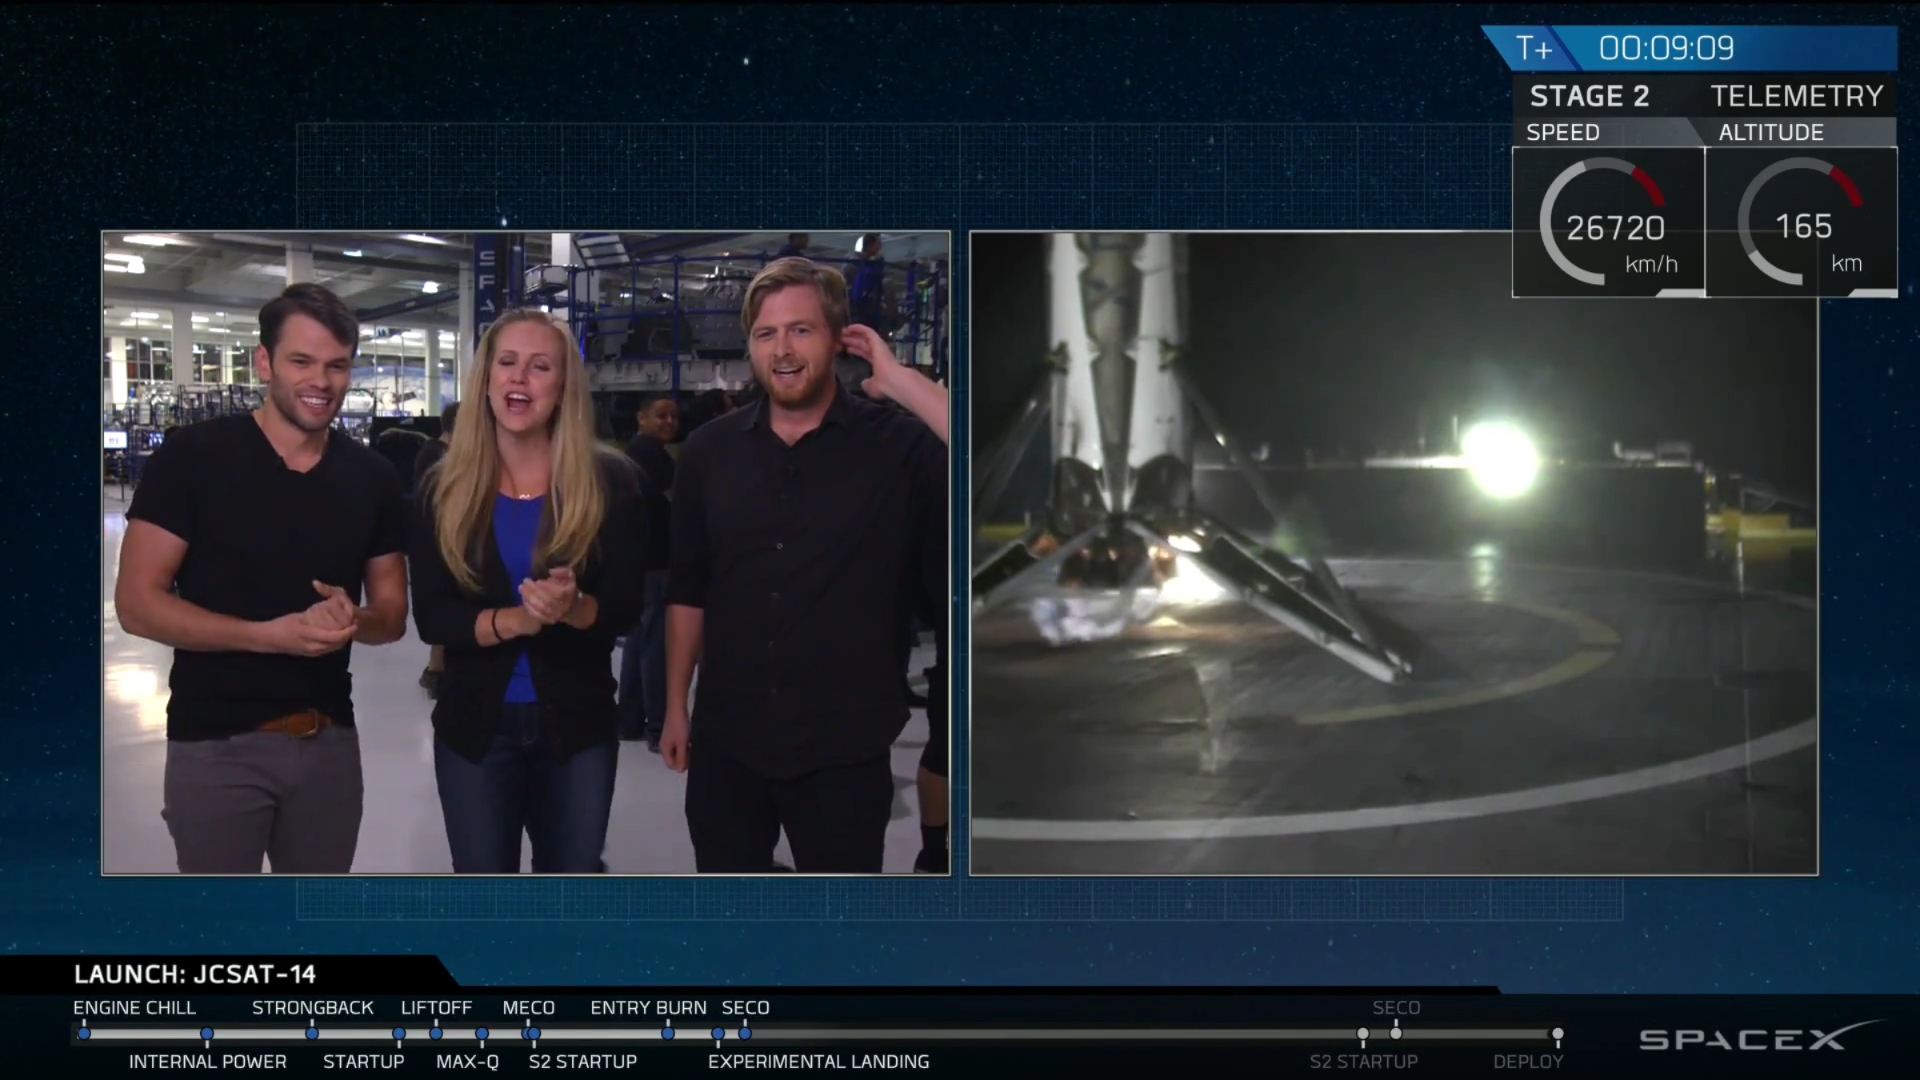 SpaceX successfully lands a rocket stage on its ship for the second time.